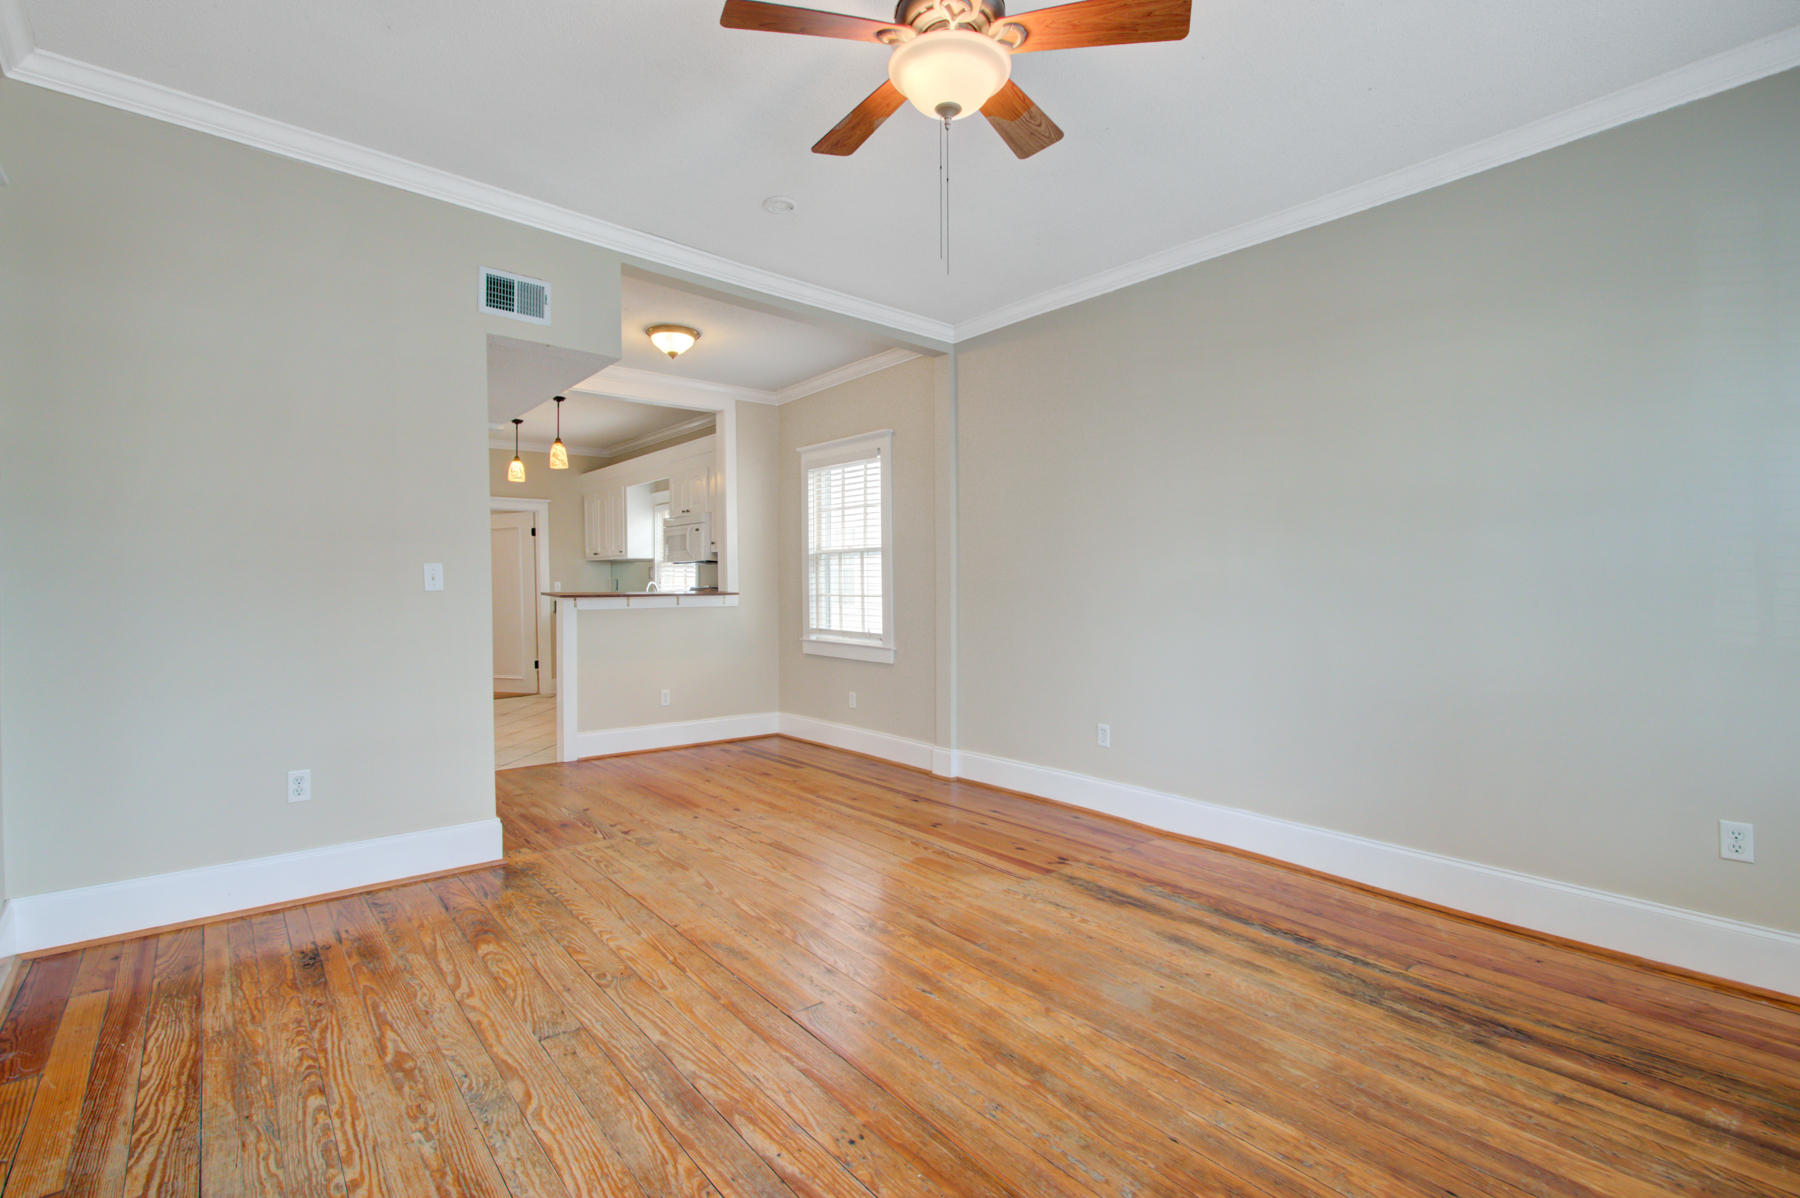 Elliotborough Condos For Sale - 3 Kracke, Charleston, SC - 13